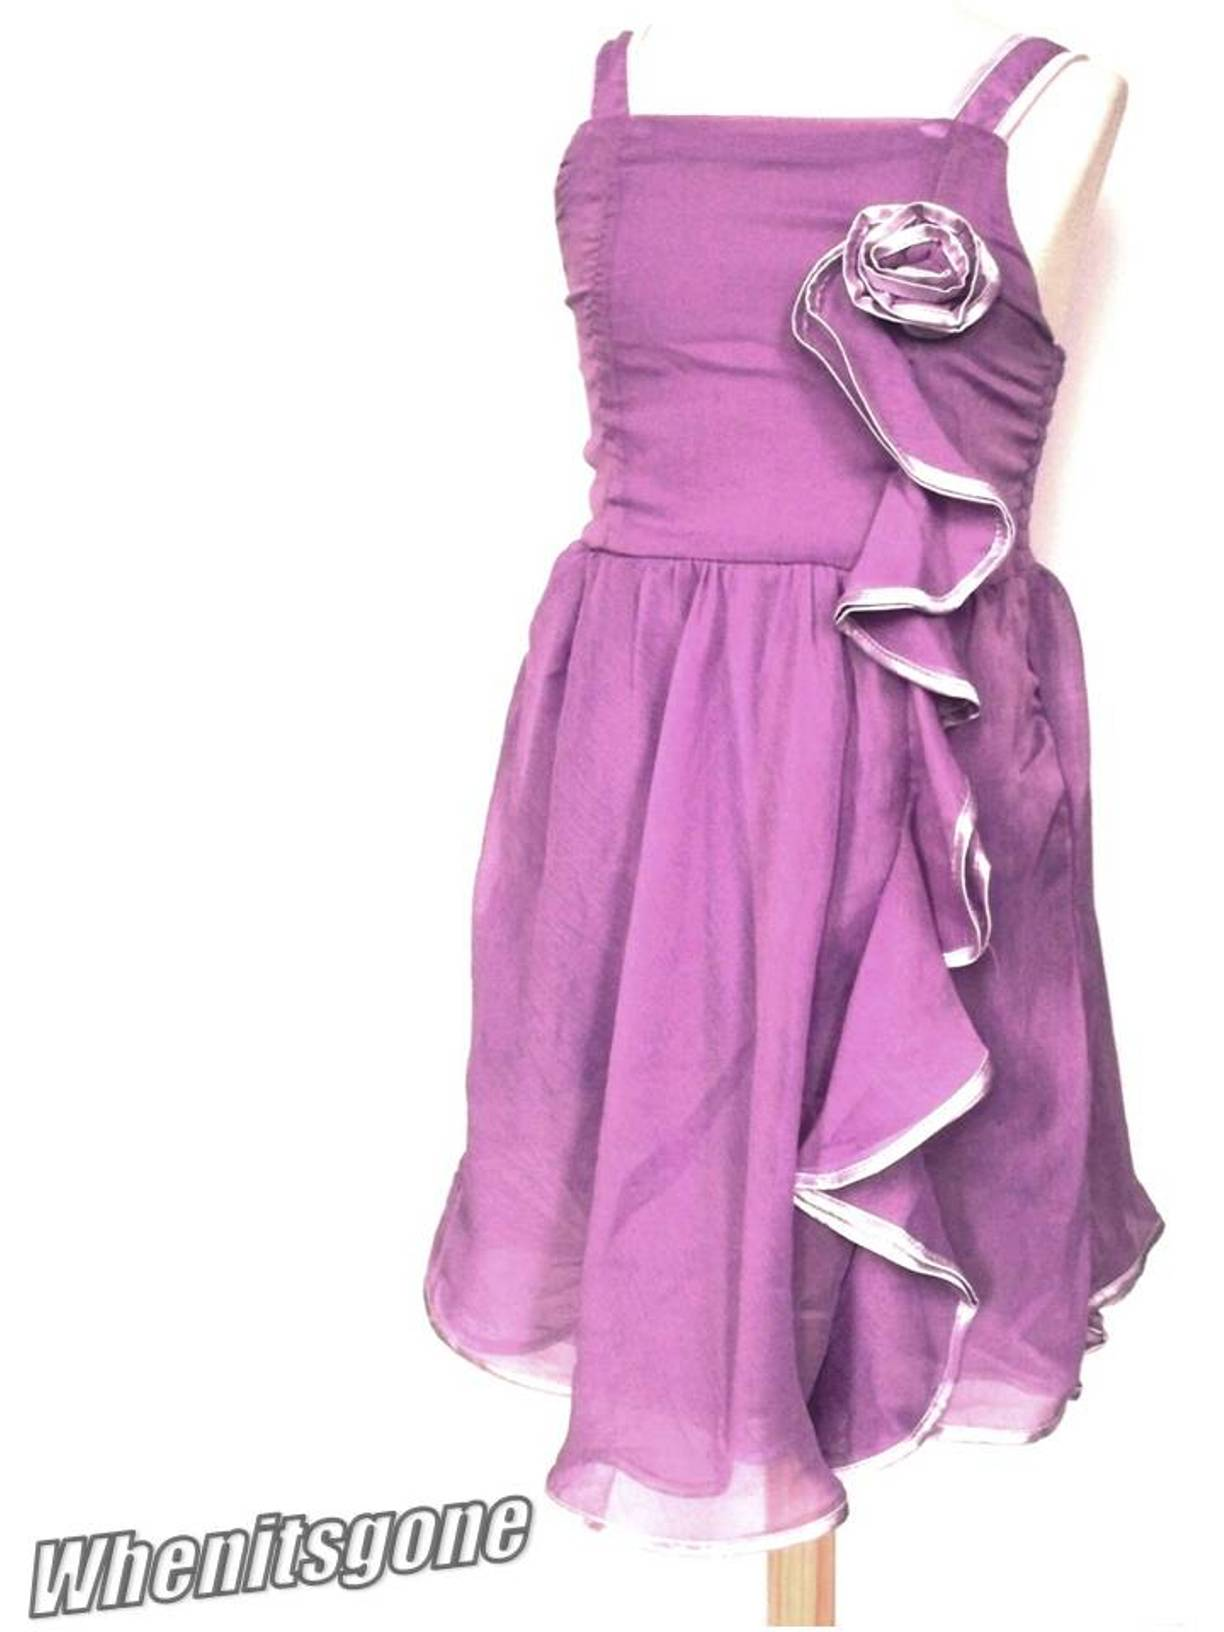 Girls-Chiffon-Rosette-Frill-Trim-Party-Dress-Pink-Purple-Grey-3-14-Years